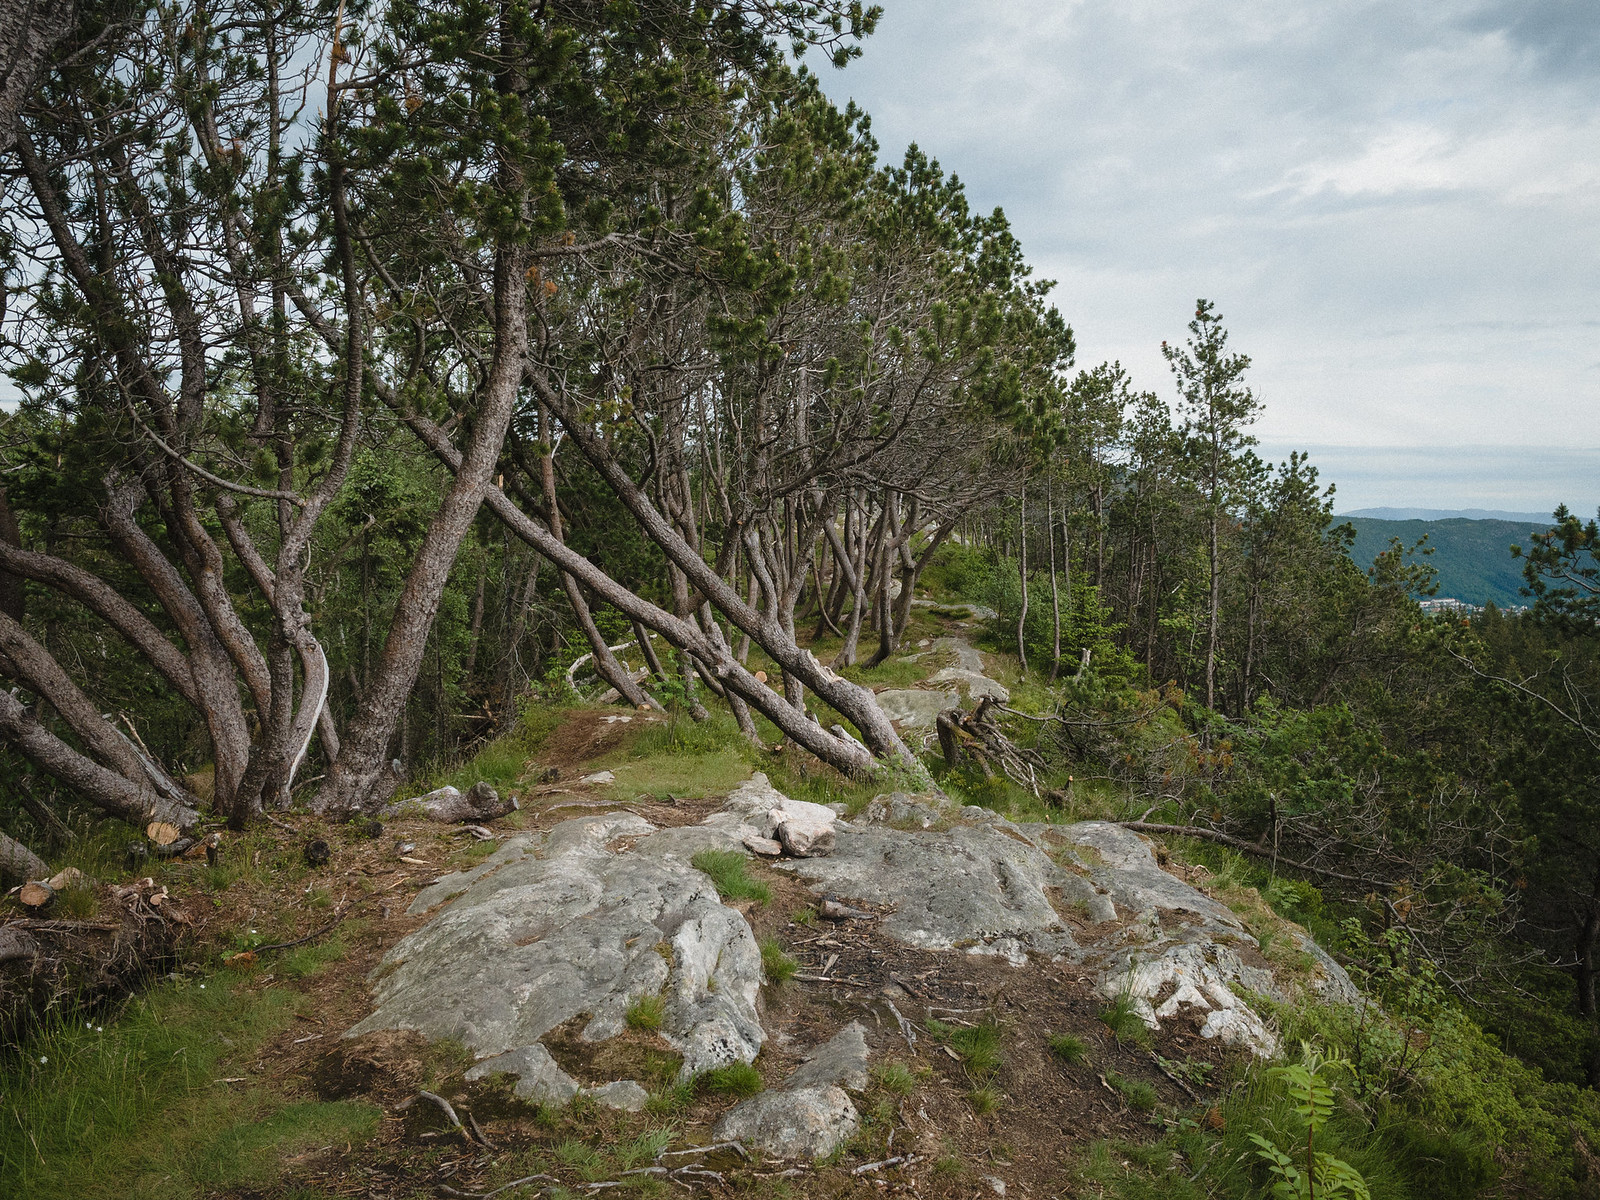 Crooked pines and trail in mountain area.